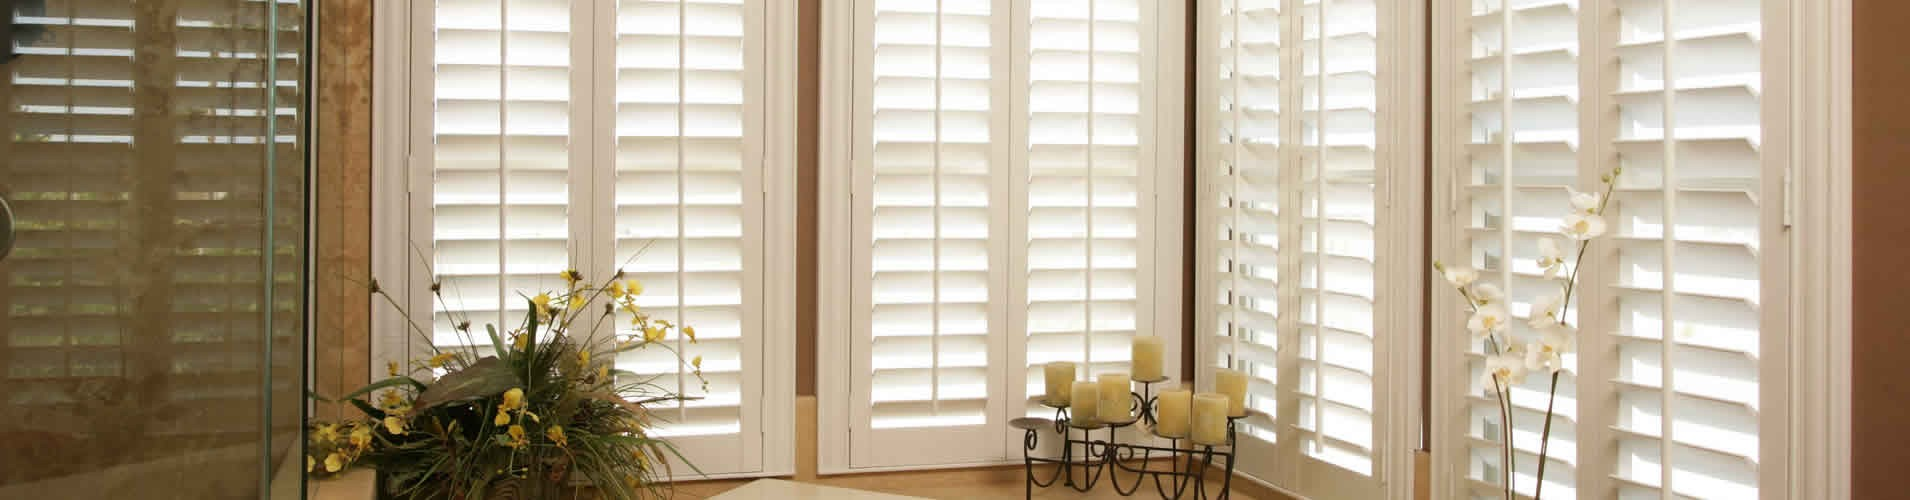 Dallas Tx Plantation Shutters Faux Wood Texas